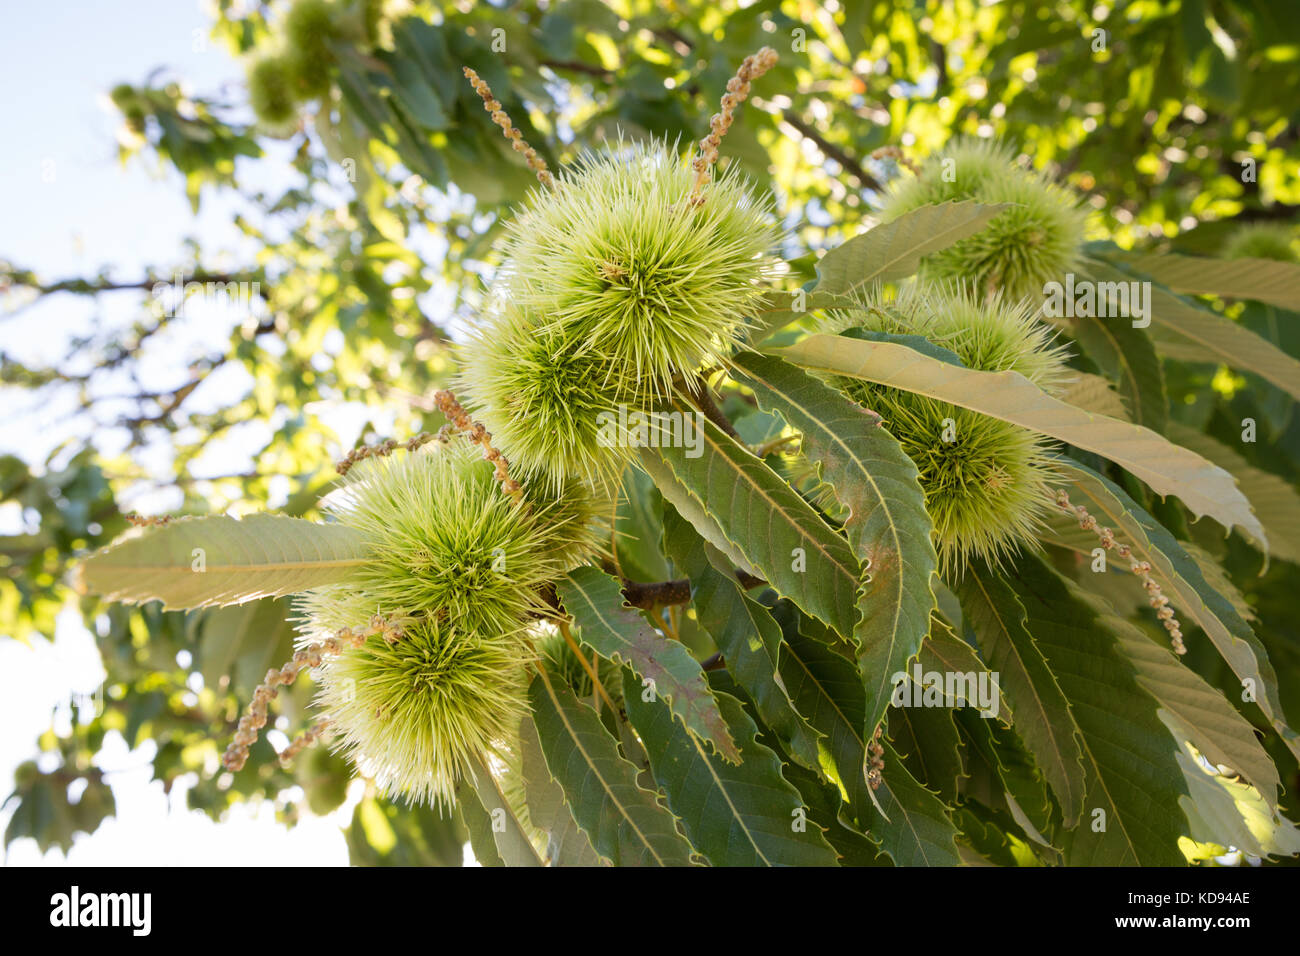 Close up of the spiny sharp cupule of the Chestnut tree, also called bur or burr hanging in the sun. - Stock Image